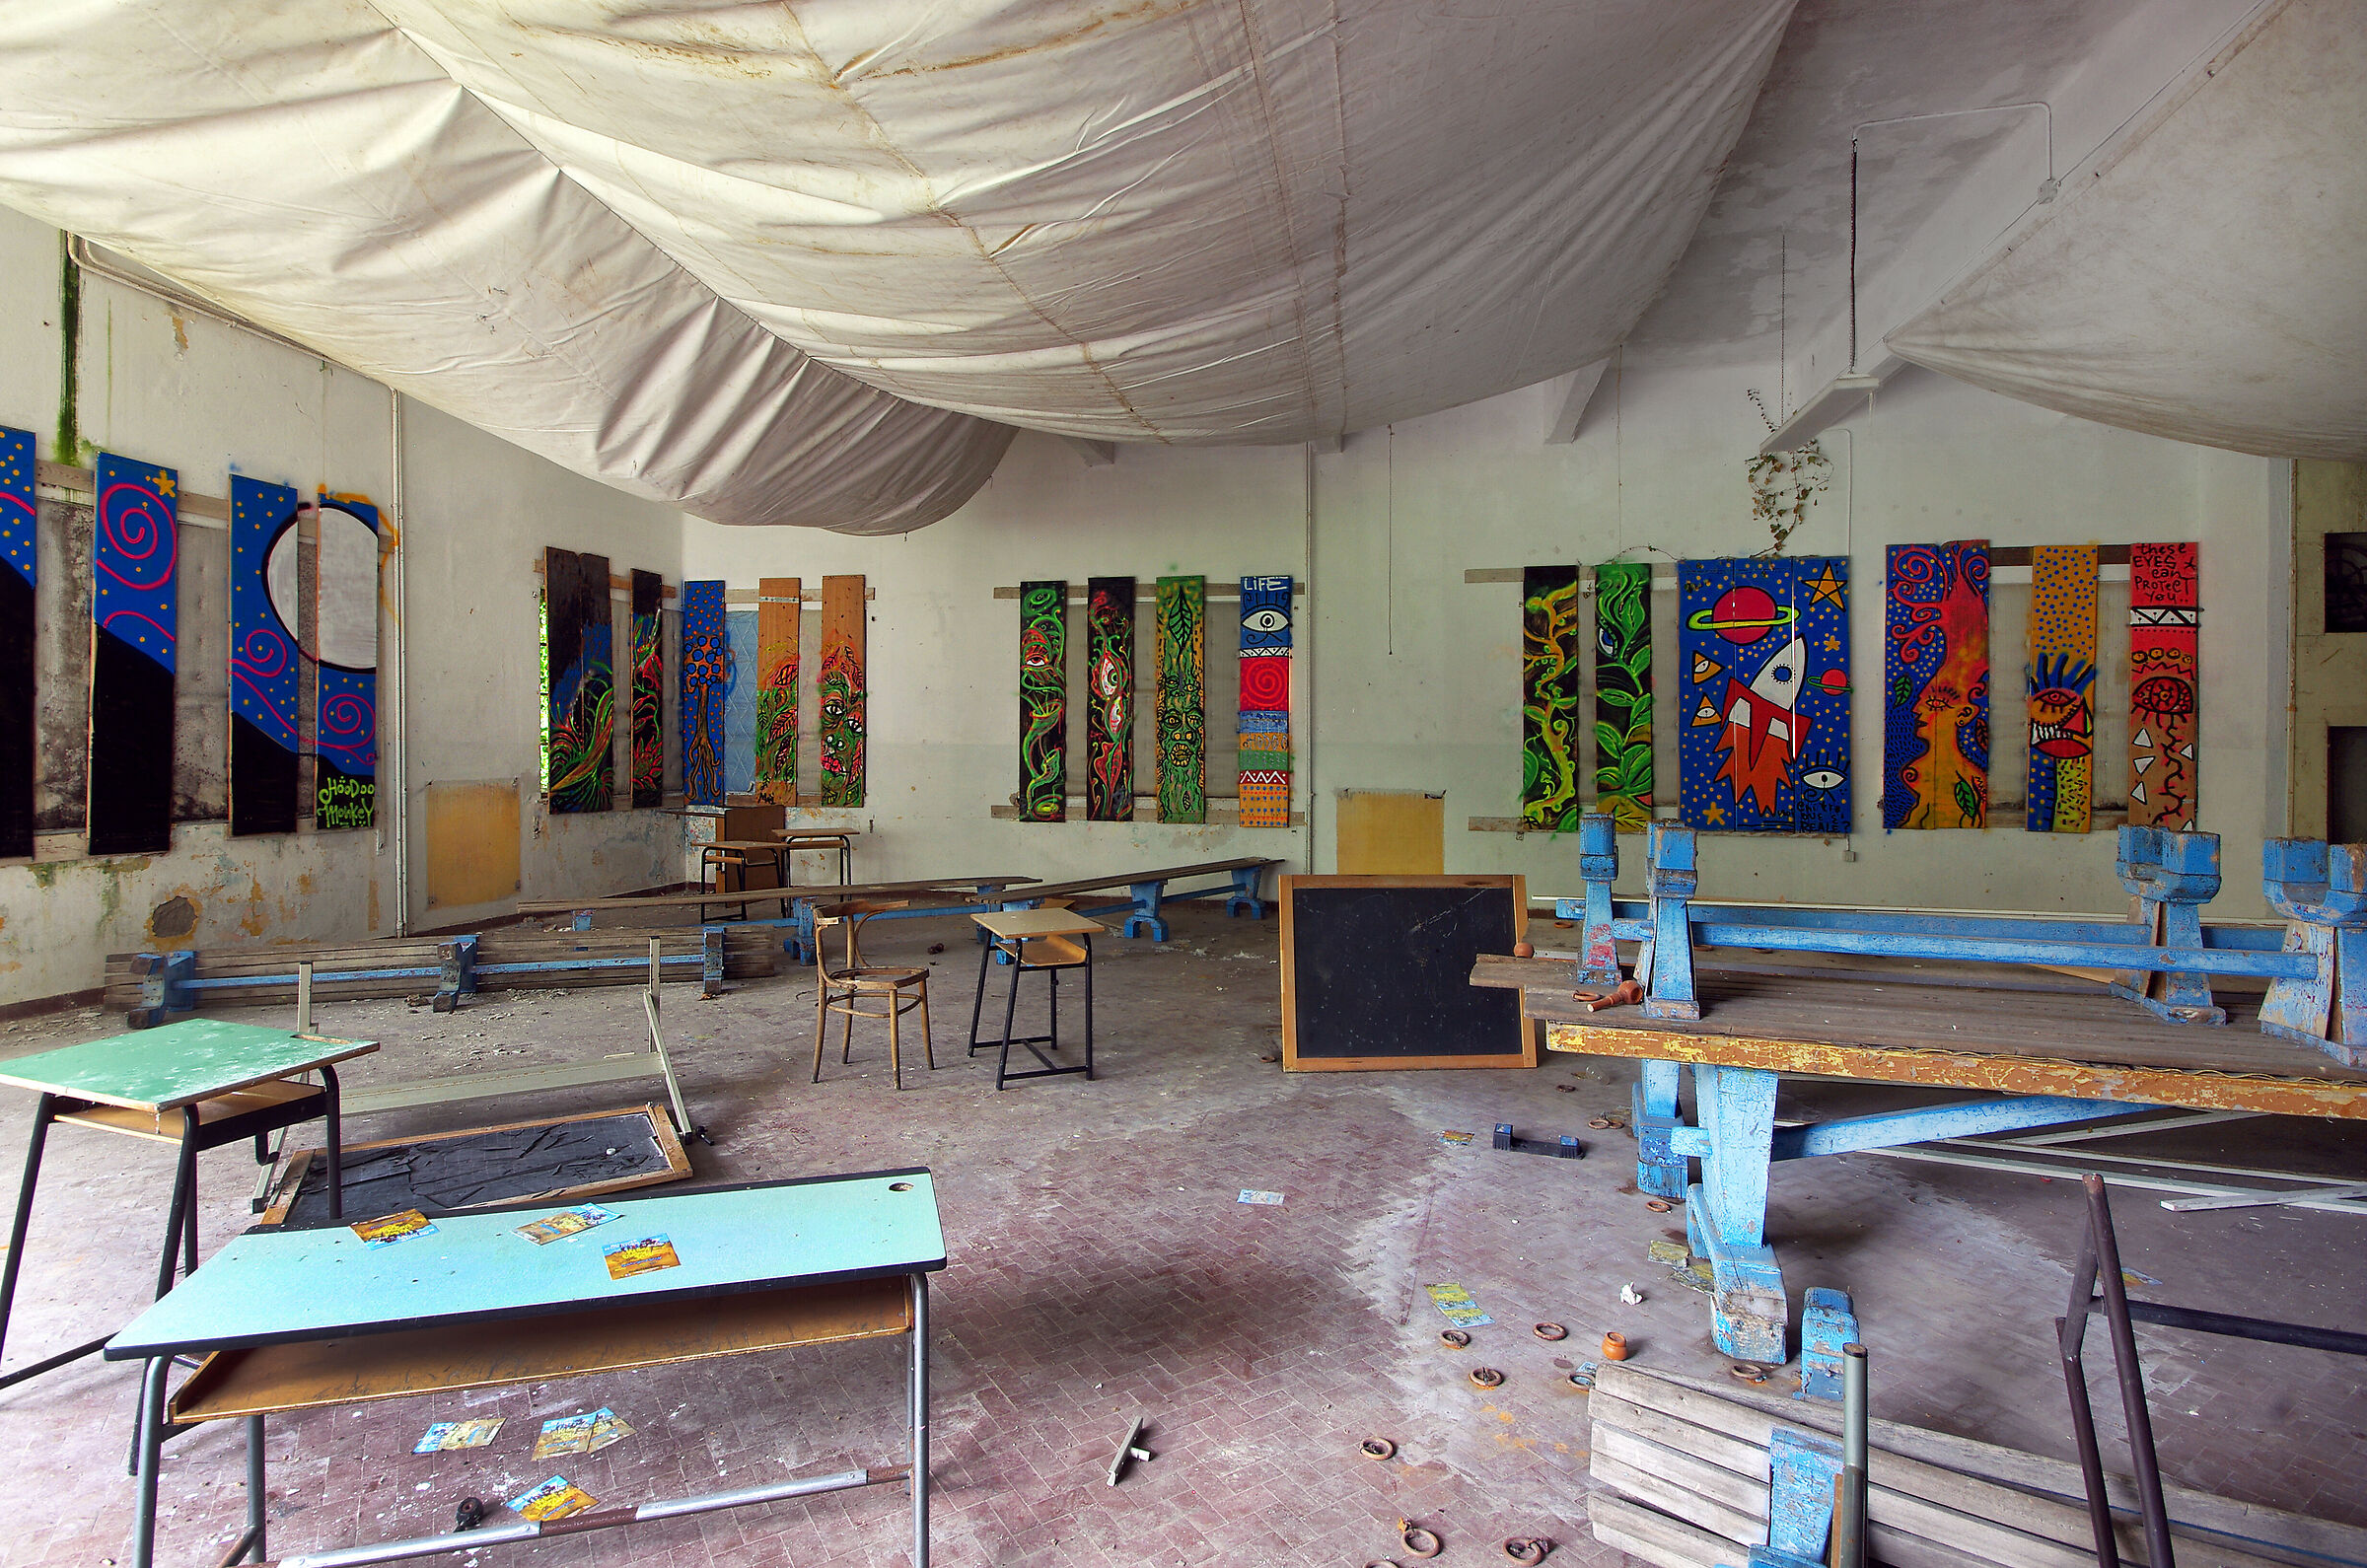 The artists' room...